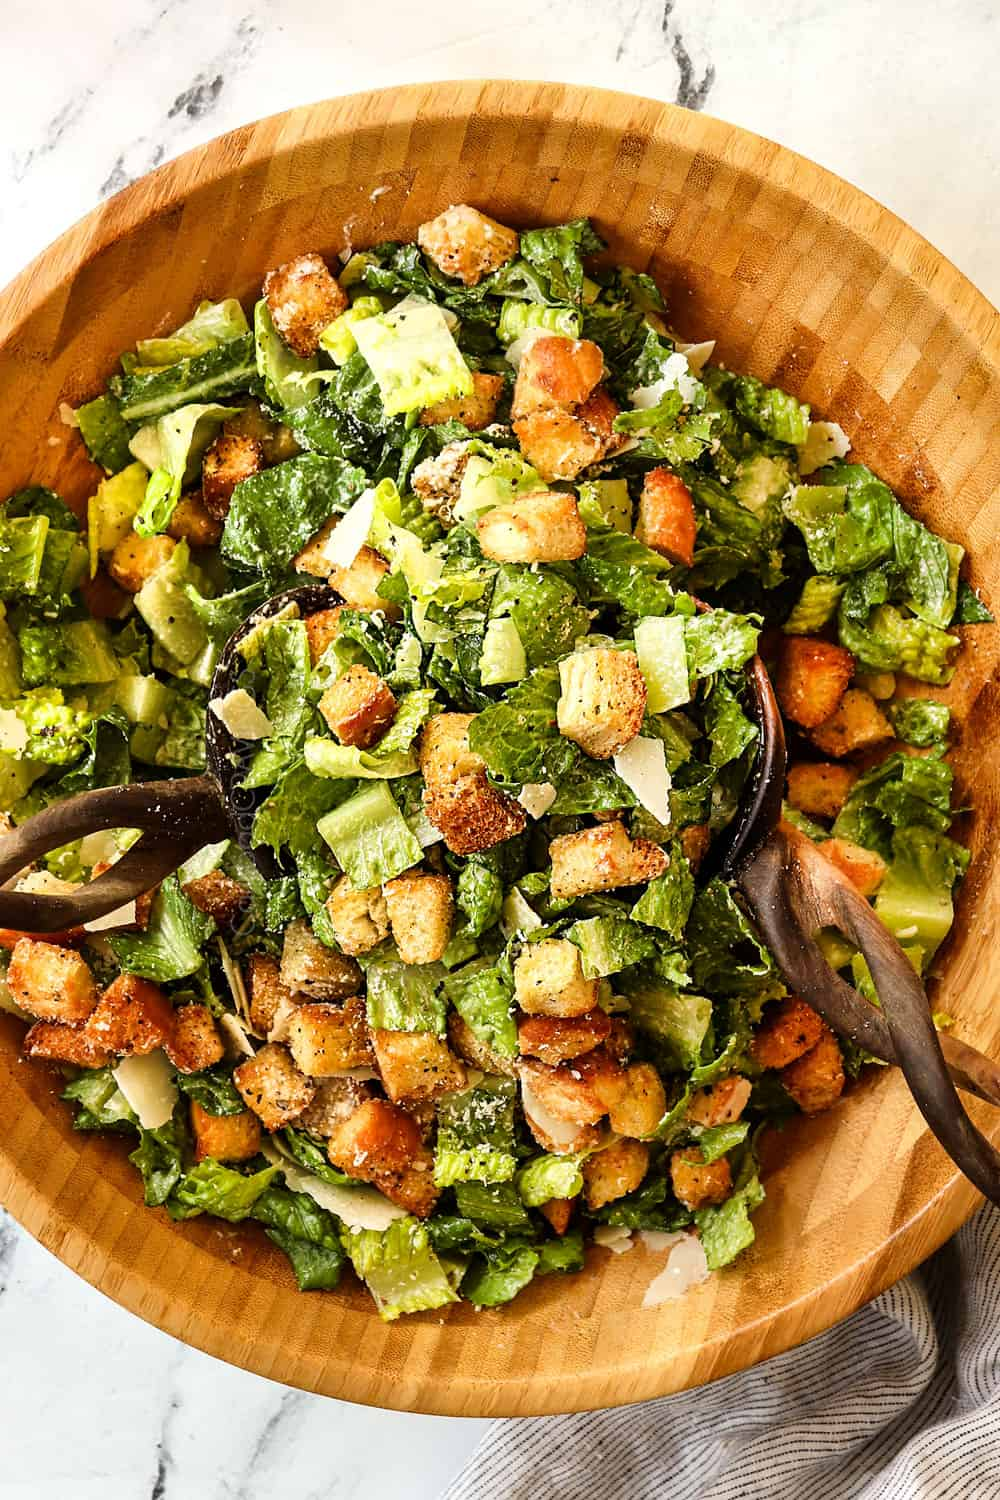 showing how to make Caesar Salad recipe by tossing the salad ingredients together in a wood bowl with tongs